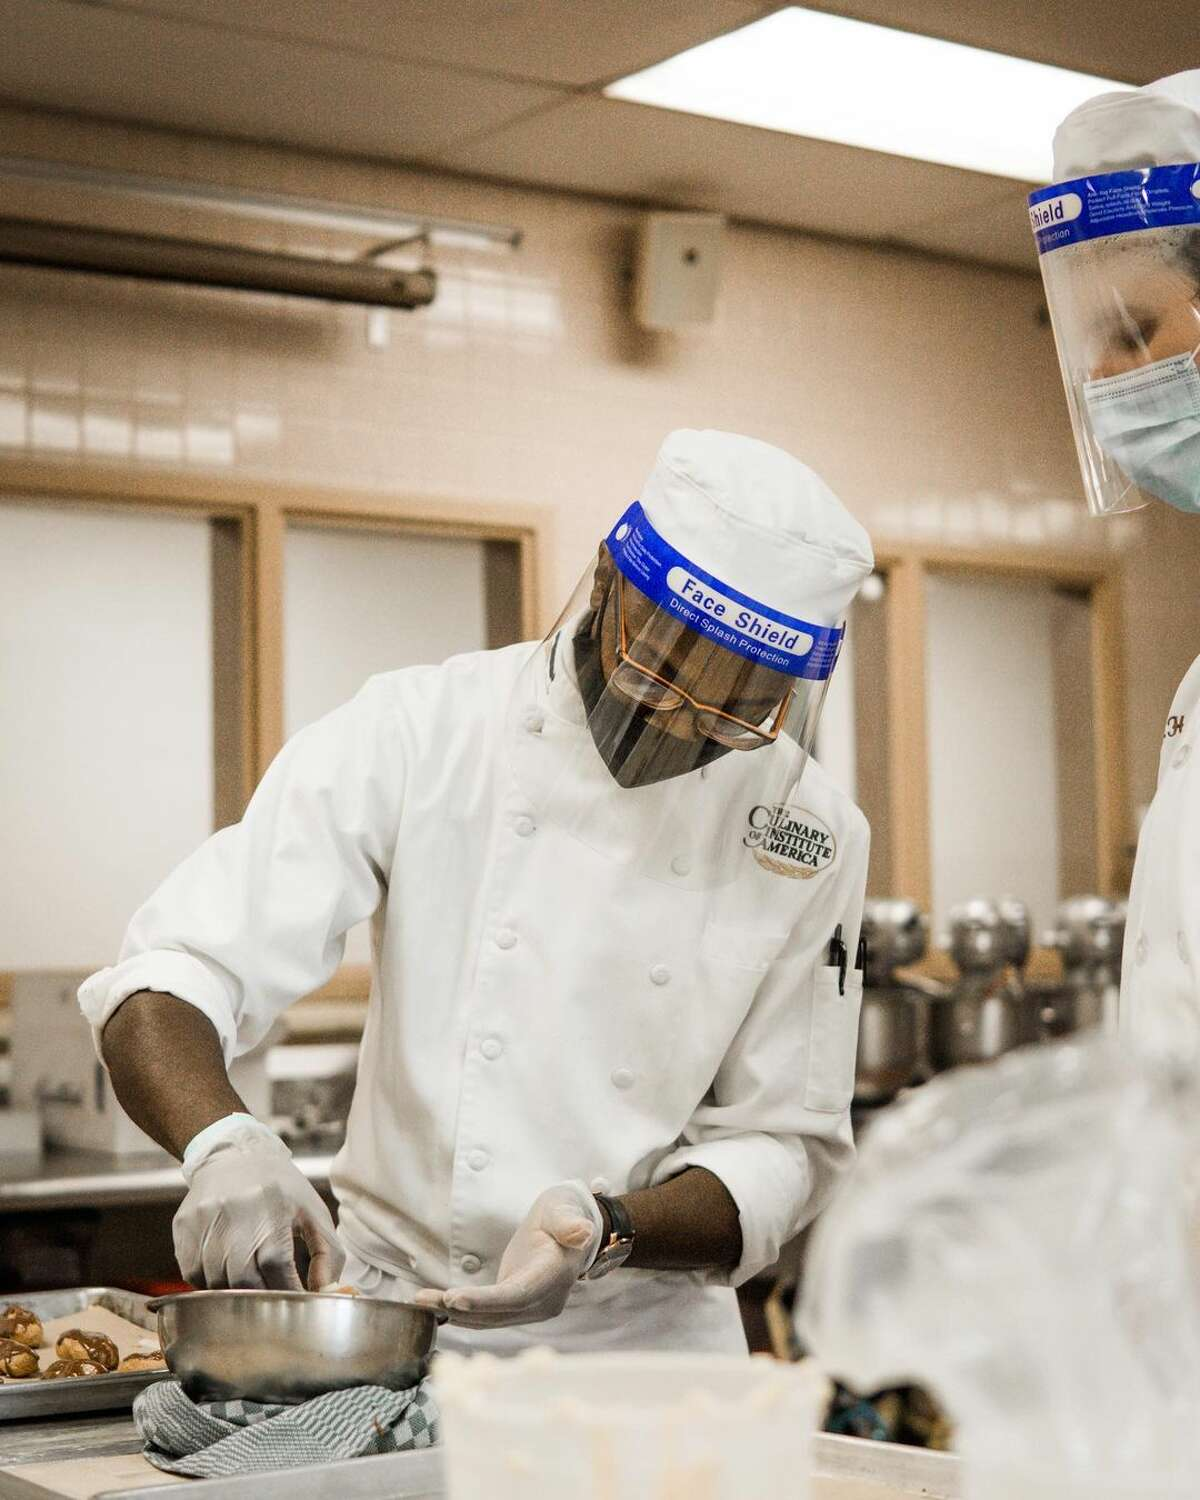 The Culinary Institute of American in Hyde Park offers hands-on cooking classes, more intensive boot camps for cooking and baking, as well as wine lessons and family-friendly cooking experiences.